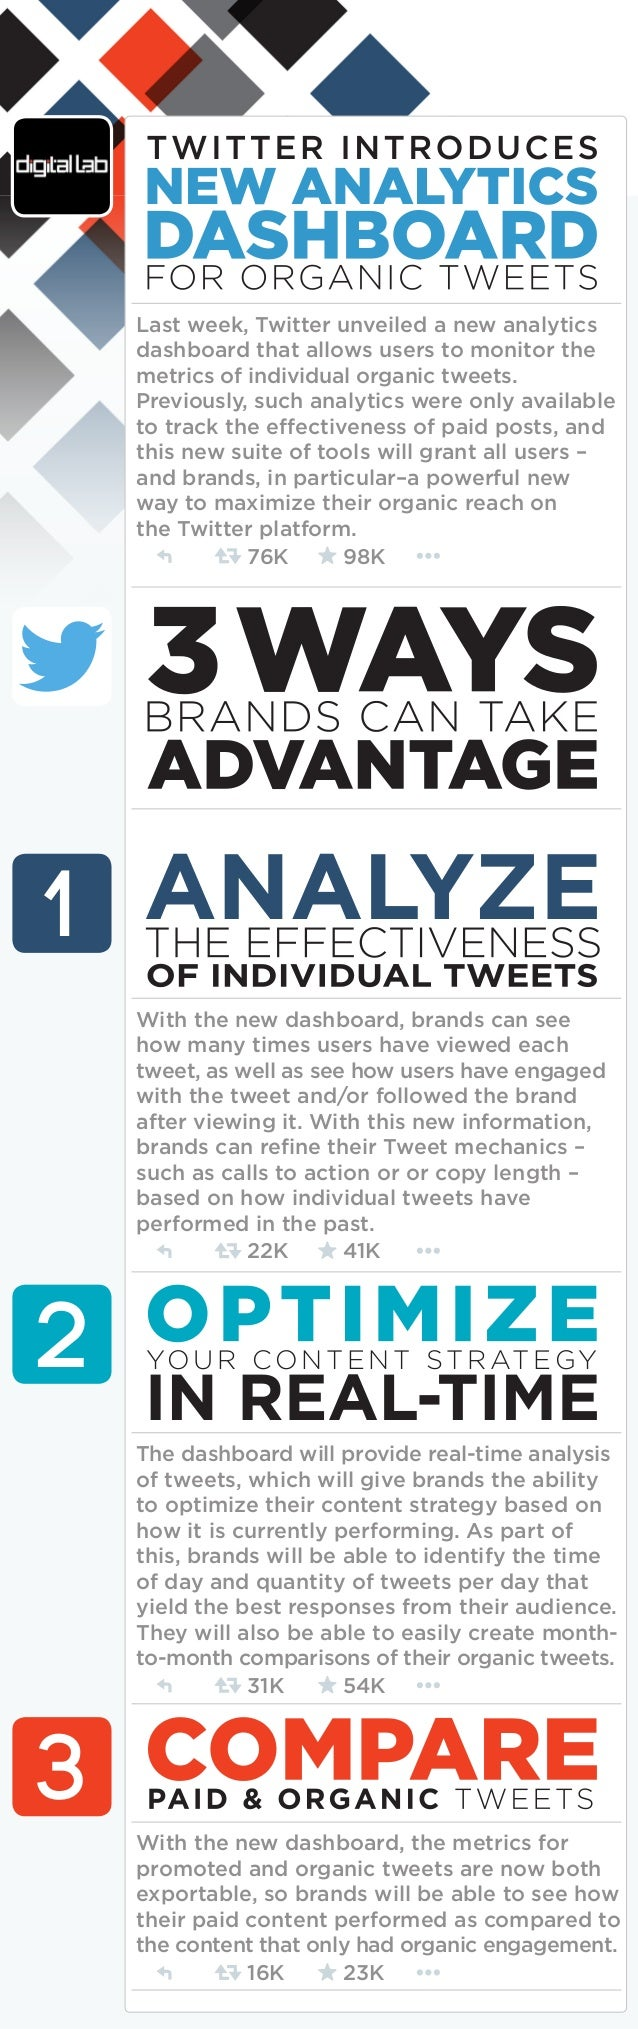 Last week, Twitter unveiled a new analytics dashboard that allows users to monitor the metrics of individual organic tweet...